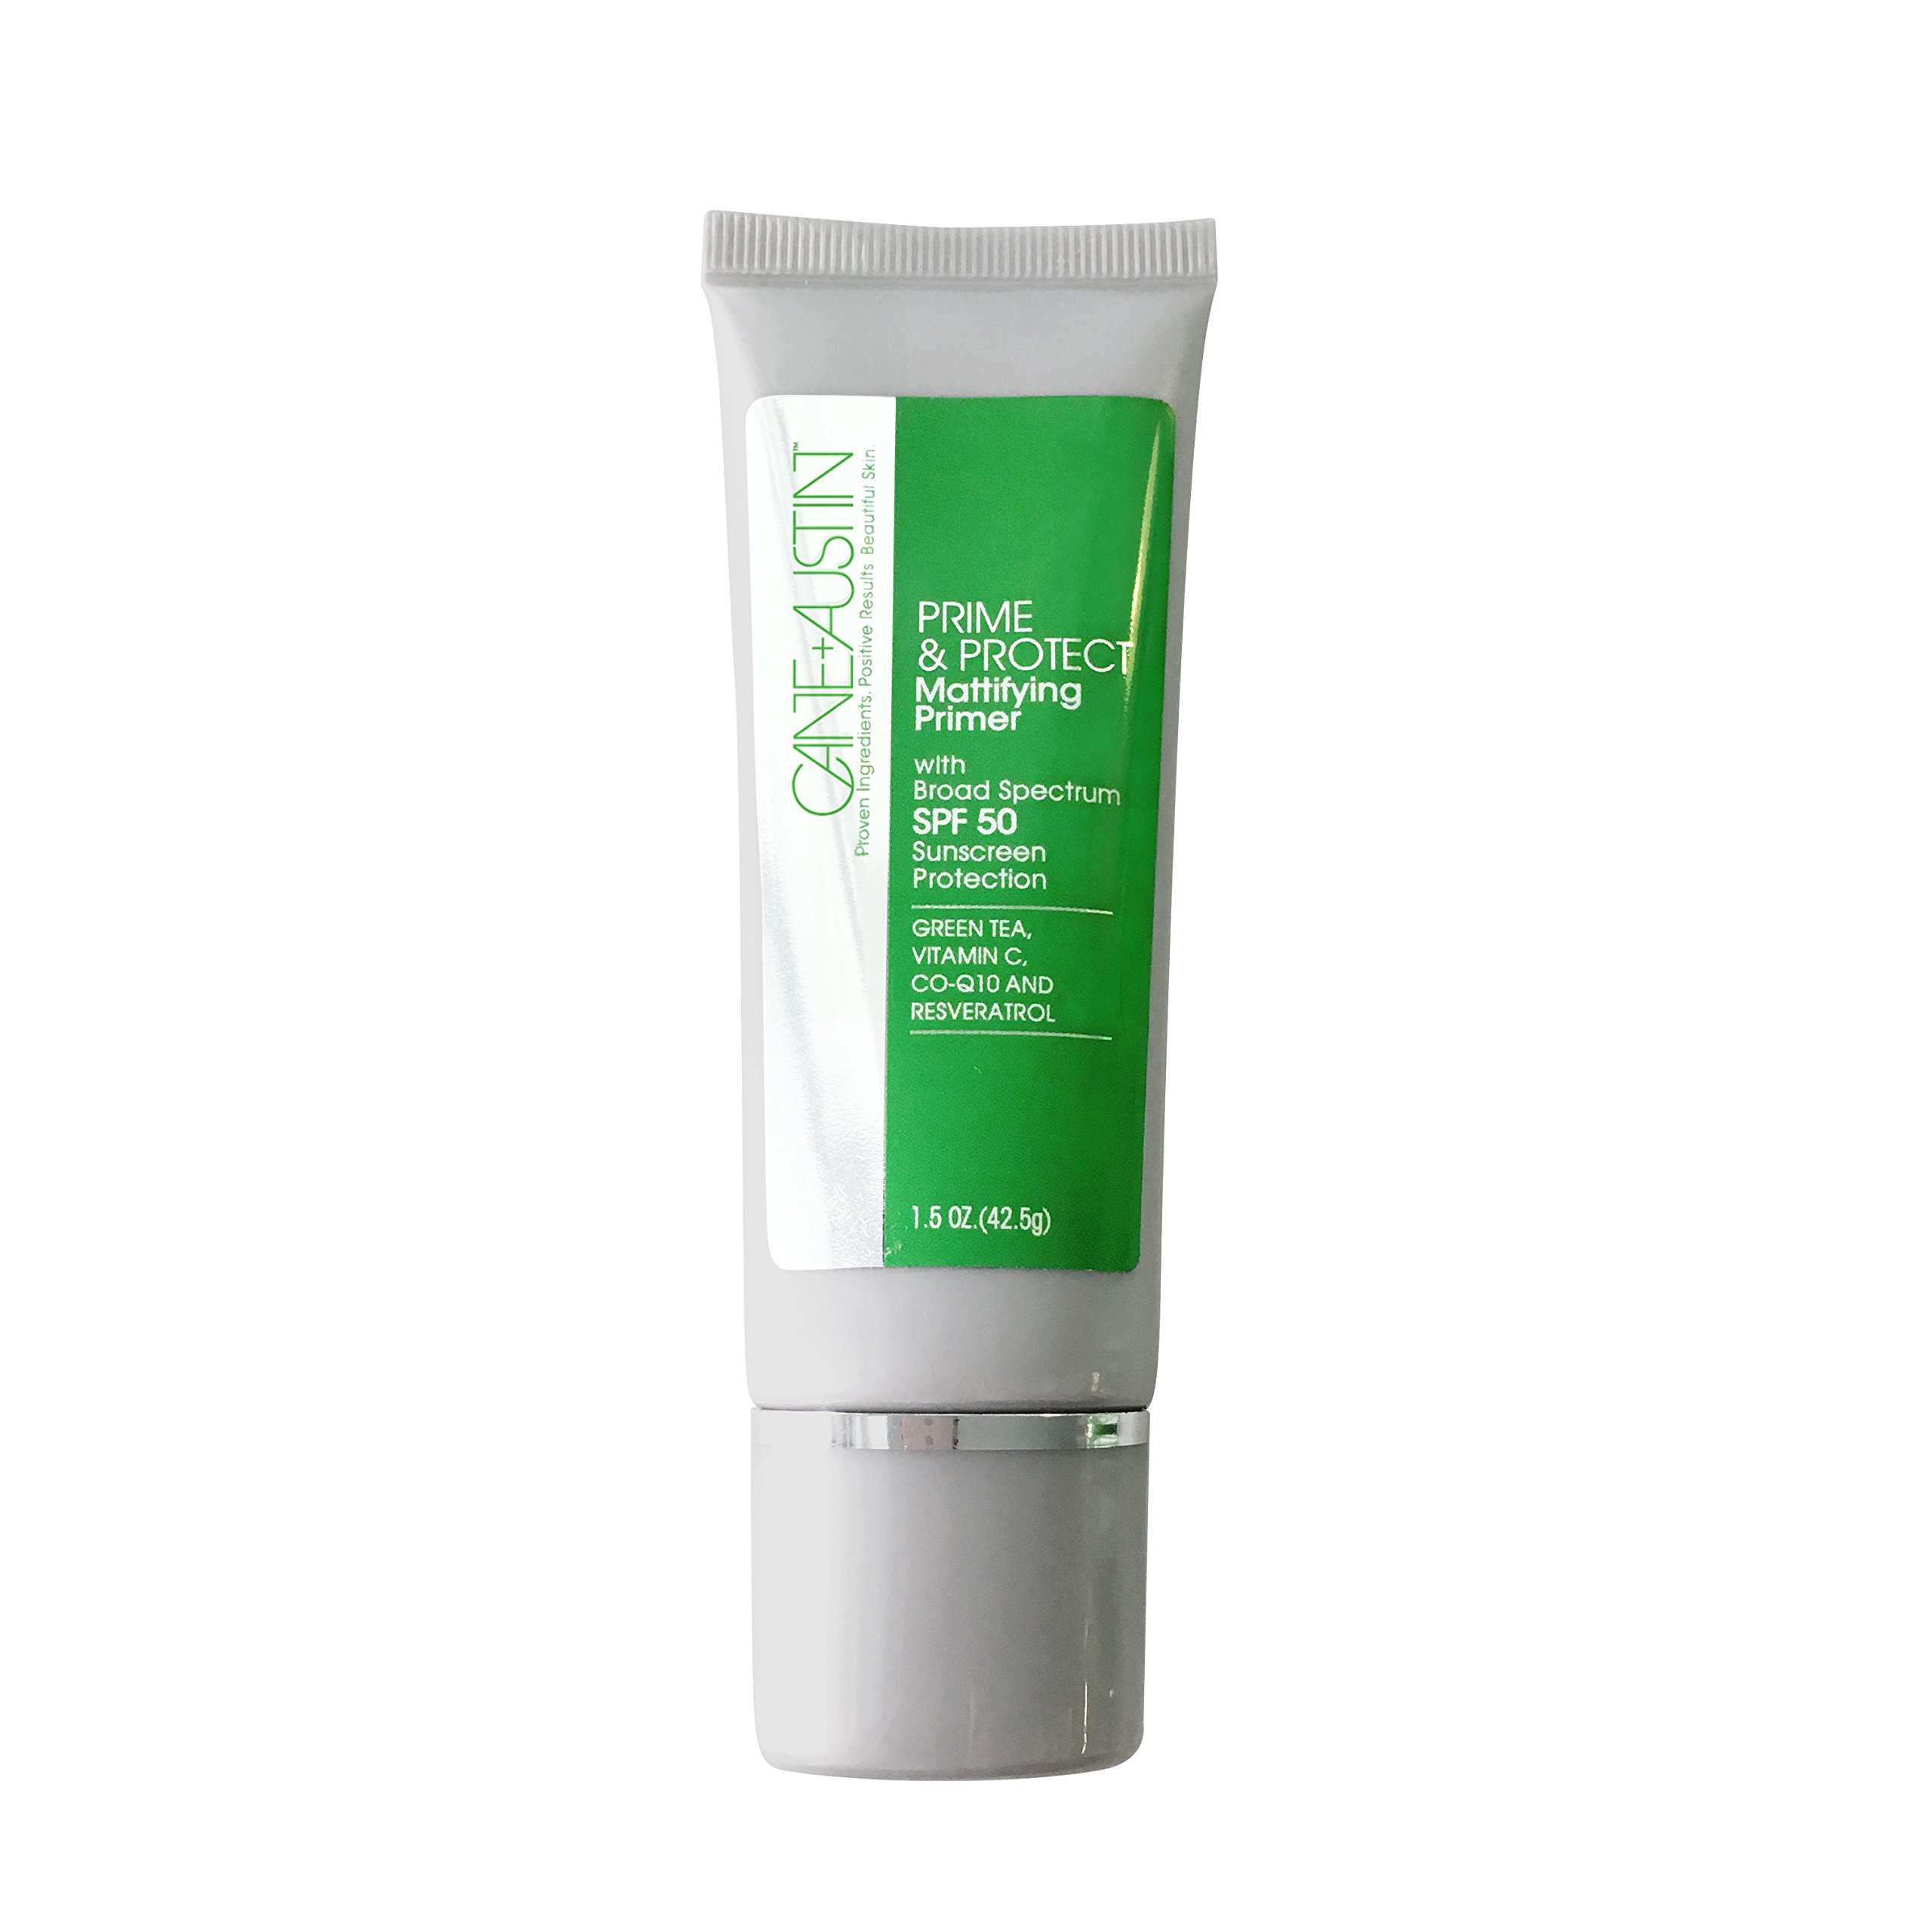 CANE + AUSTIN Prime and Protect Mattifying Primer, 1.5 Oz by CANE + AUSTIN